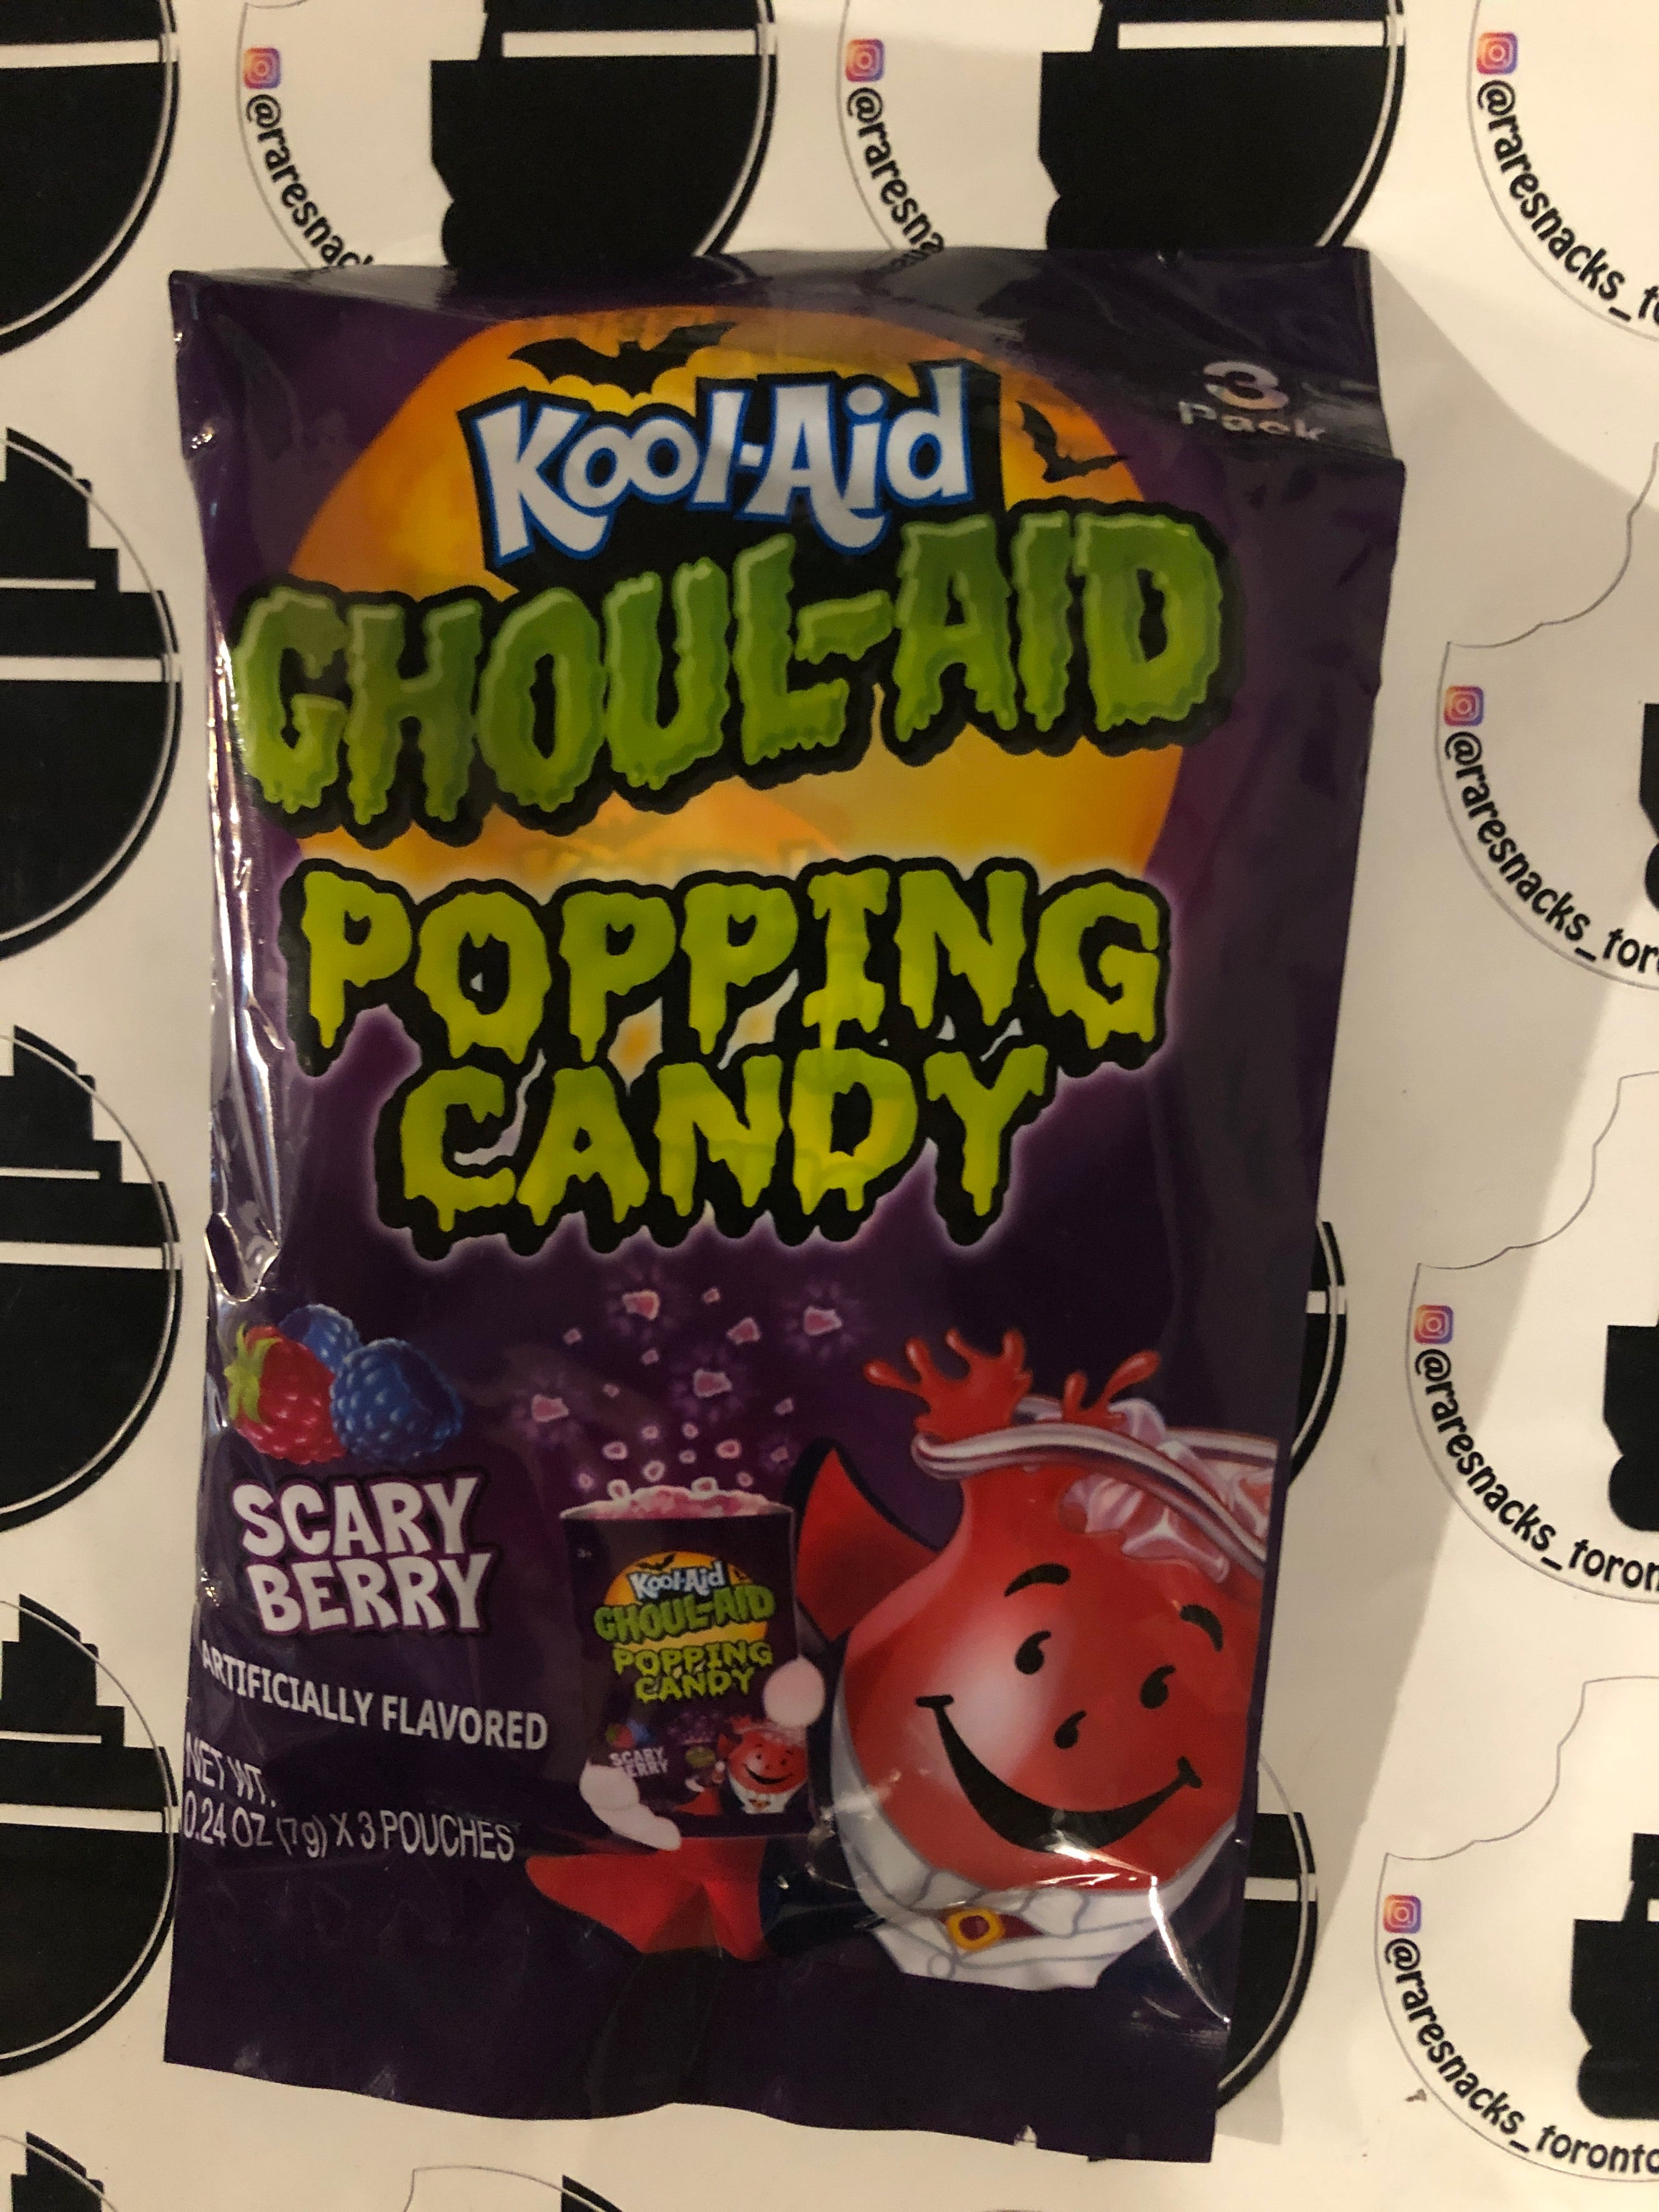 Look-aid Ghoul-aid Popping Candy 3pk